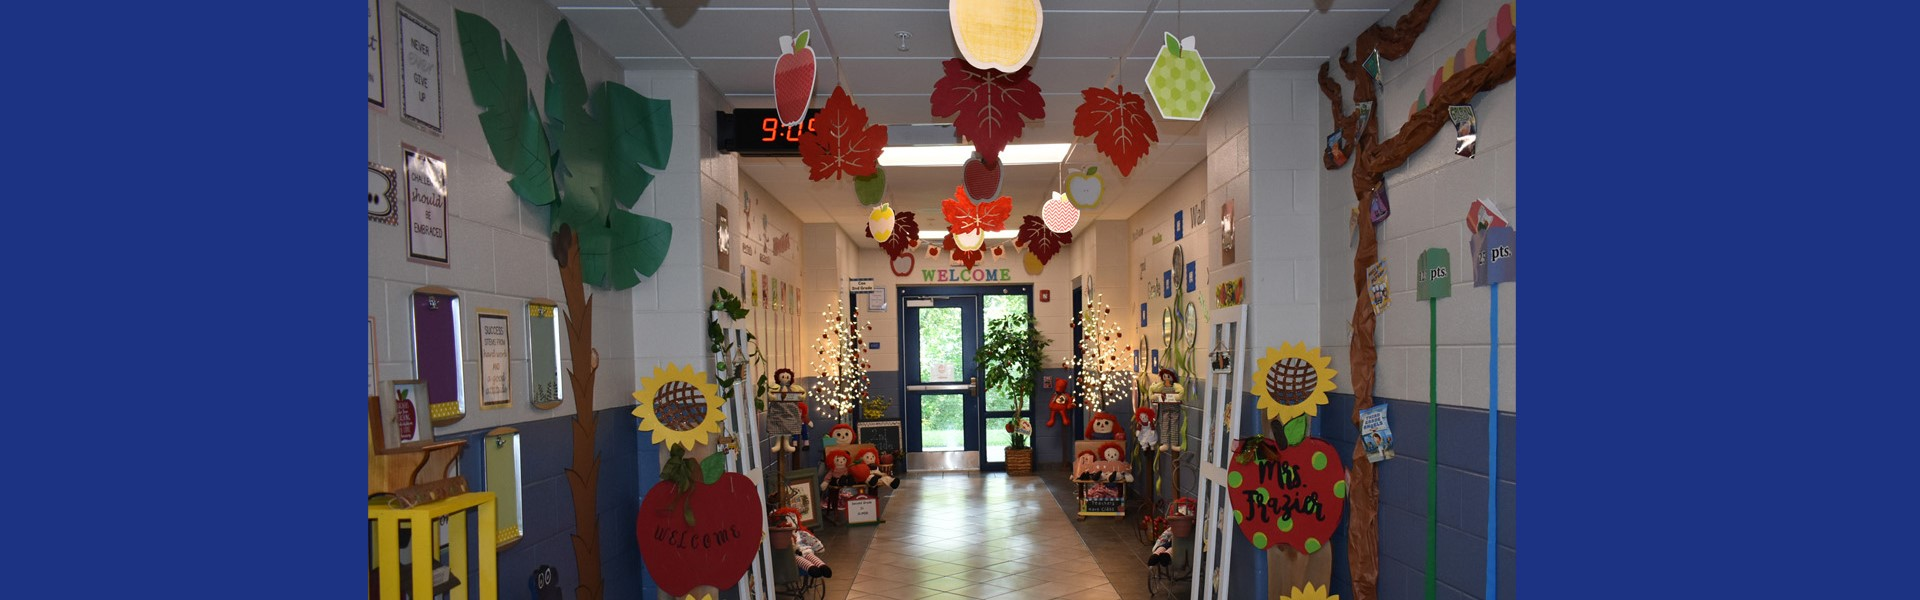 PV Fall Decorations